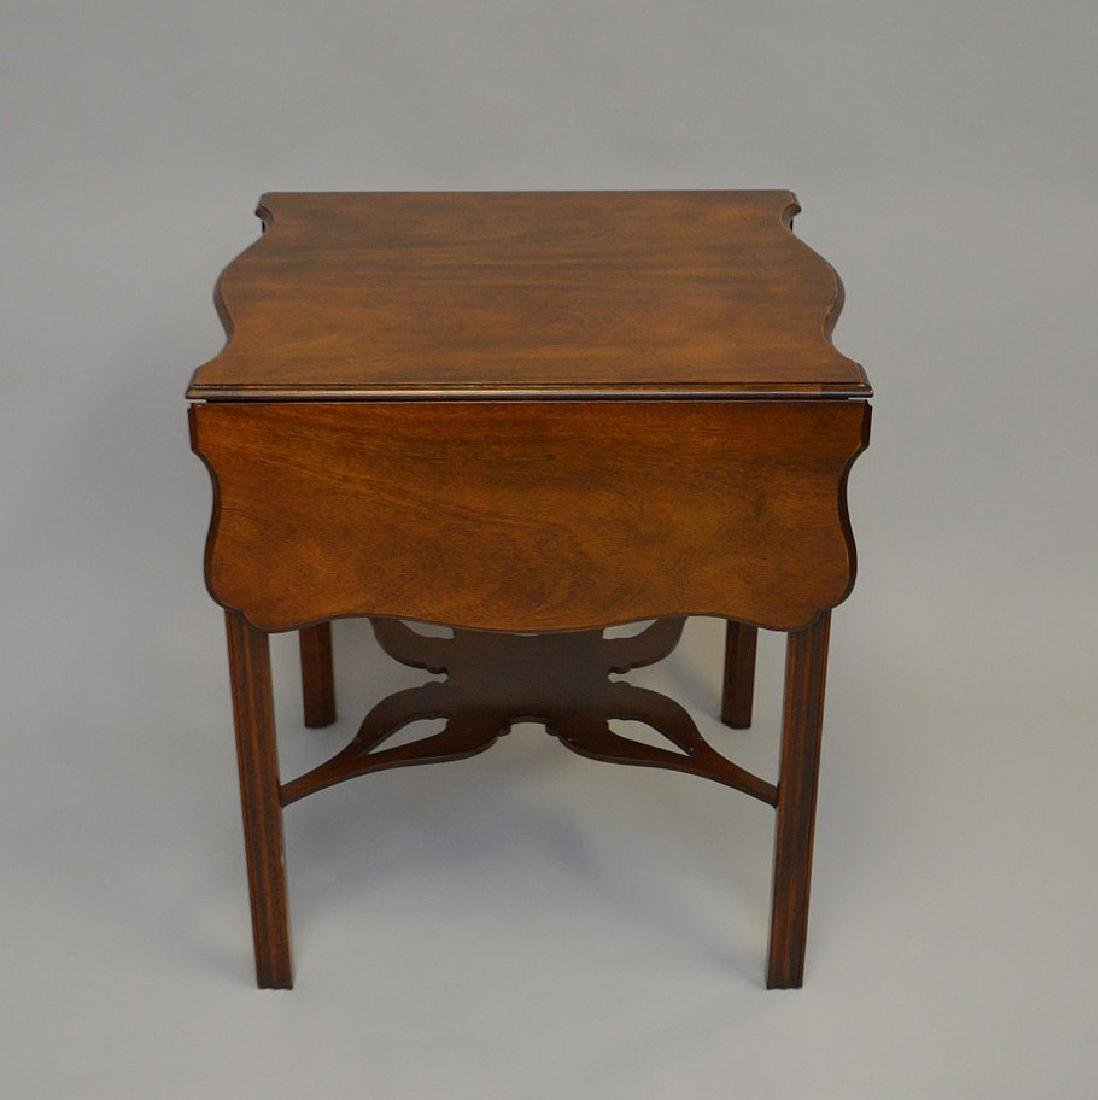 Mahogany Baker drop leaf table, Charleston Museum - 2